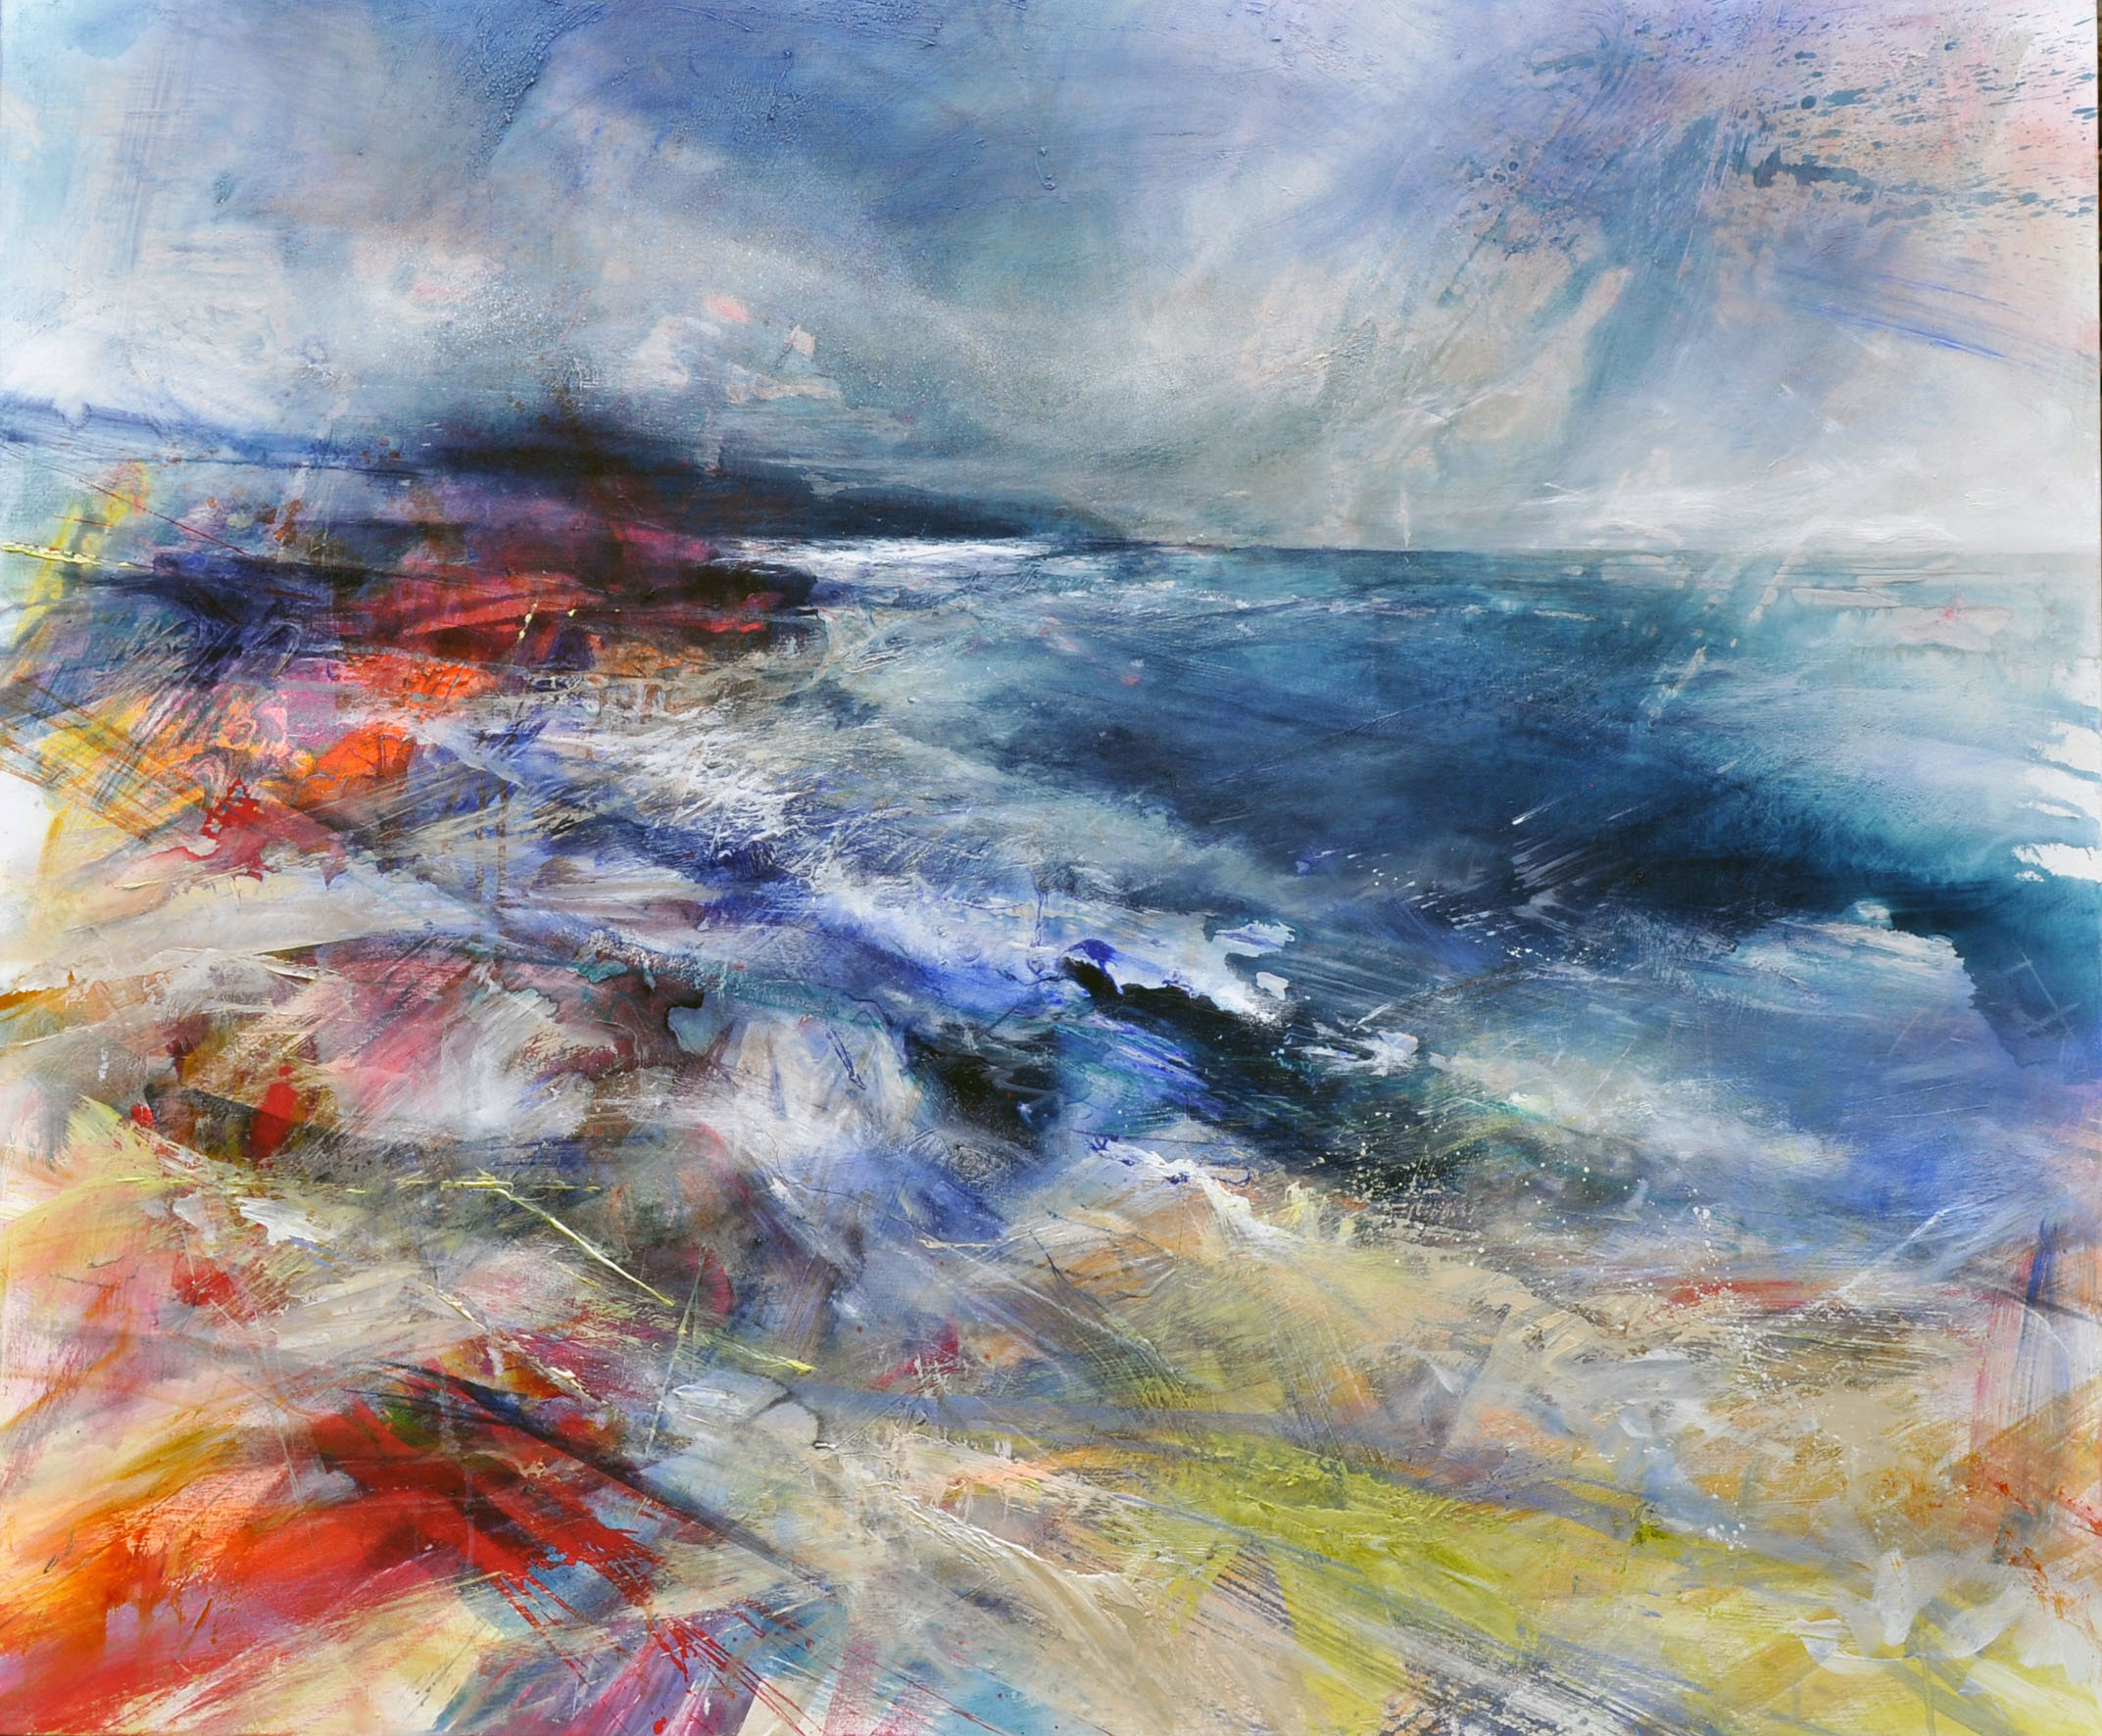 <span class=&#34;link fancybox-details-link&#34;><a href=&#34;/artists/90-freya-horsley/works/5535-freya-horsley-darting-light-2018/&#34;>View Detail Page</a></span><div class=&#34;artist&#34;><strong>Freya Horsley</strong></div> <div class=&#34;title&#34;><em>Darting Light</em>, 2018</div> <div class=&#34;signed_and_dated&#34;>signed on reverse</div> <div class=&#34;medium&#34;>mixed media on canvas</div> <div class=&#34;dimensions&#34;>100 x 120 cm<br /> 39 3/8 x 47 1/4 inches</div><div class=&#34;copyright_line&#34;>£ 220 x 10 Months, OwnArt 0% APR</div>